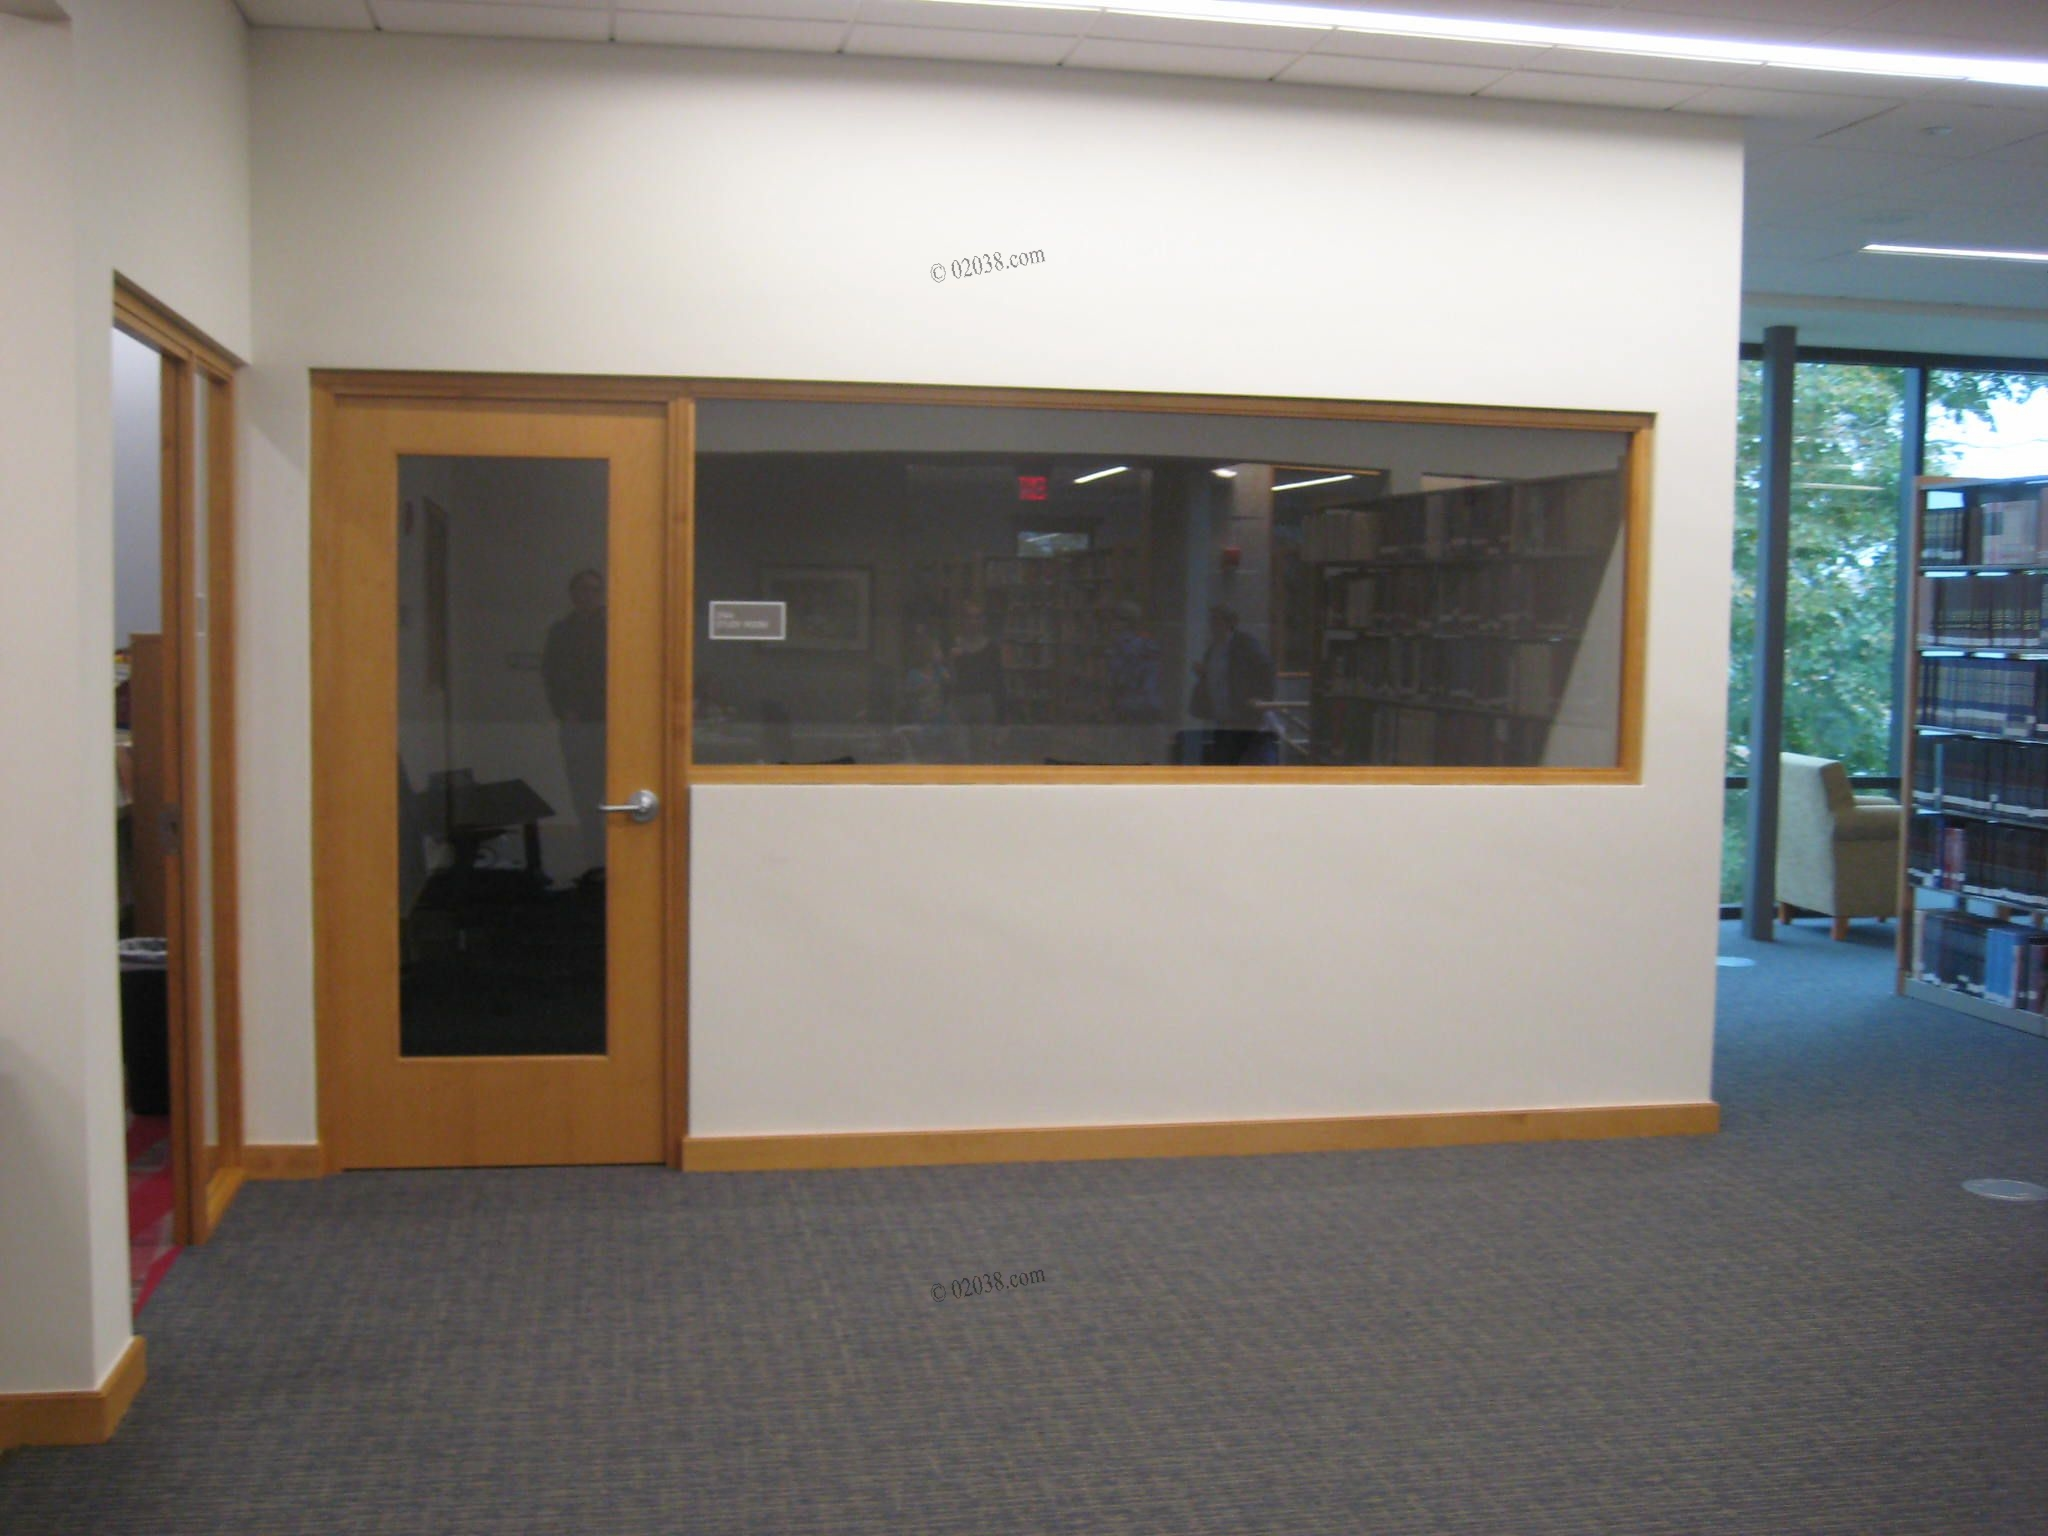 Public library study room